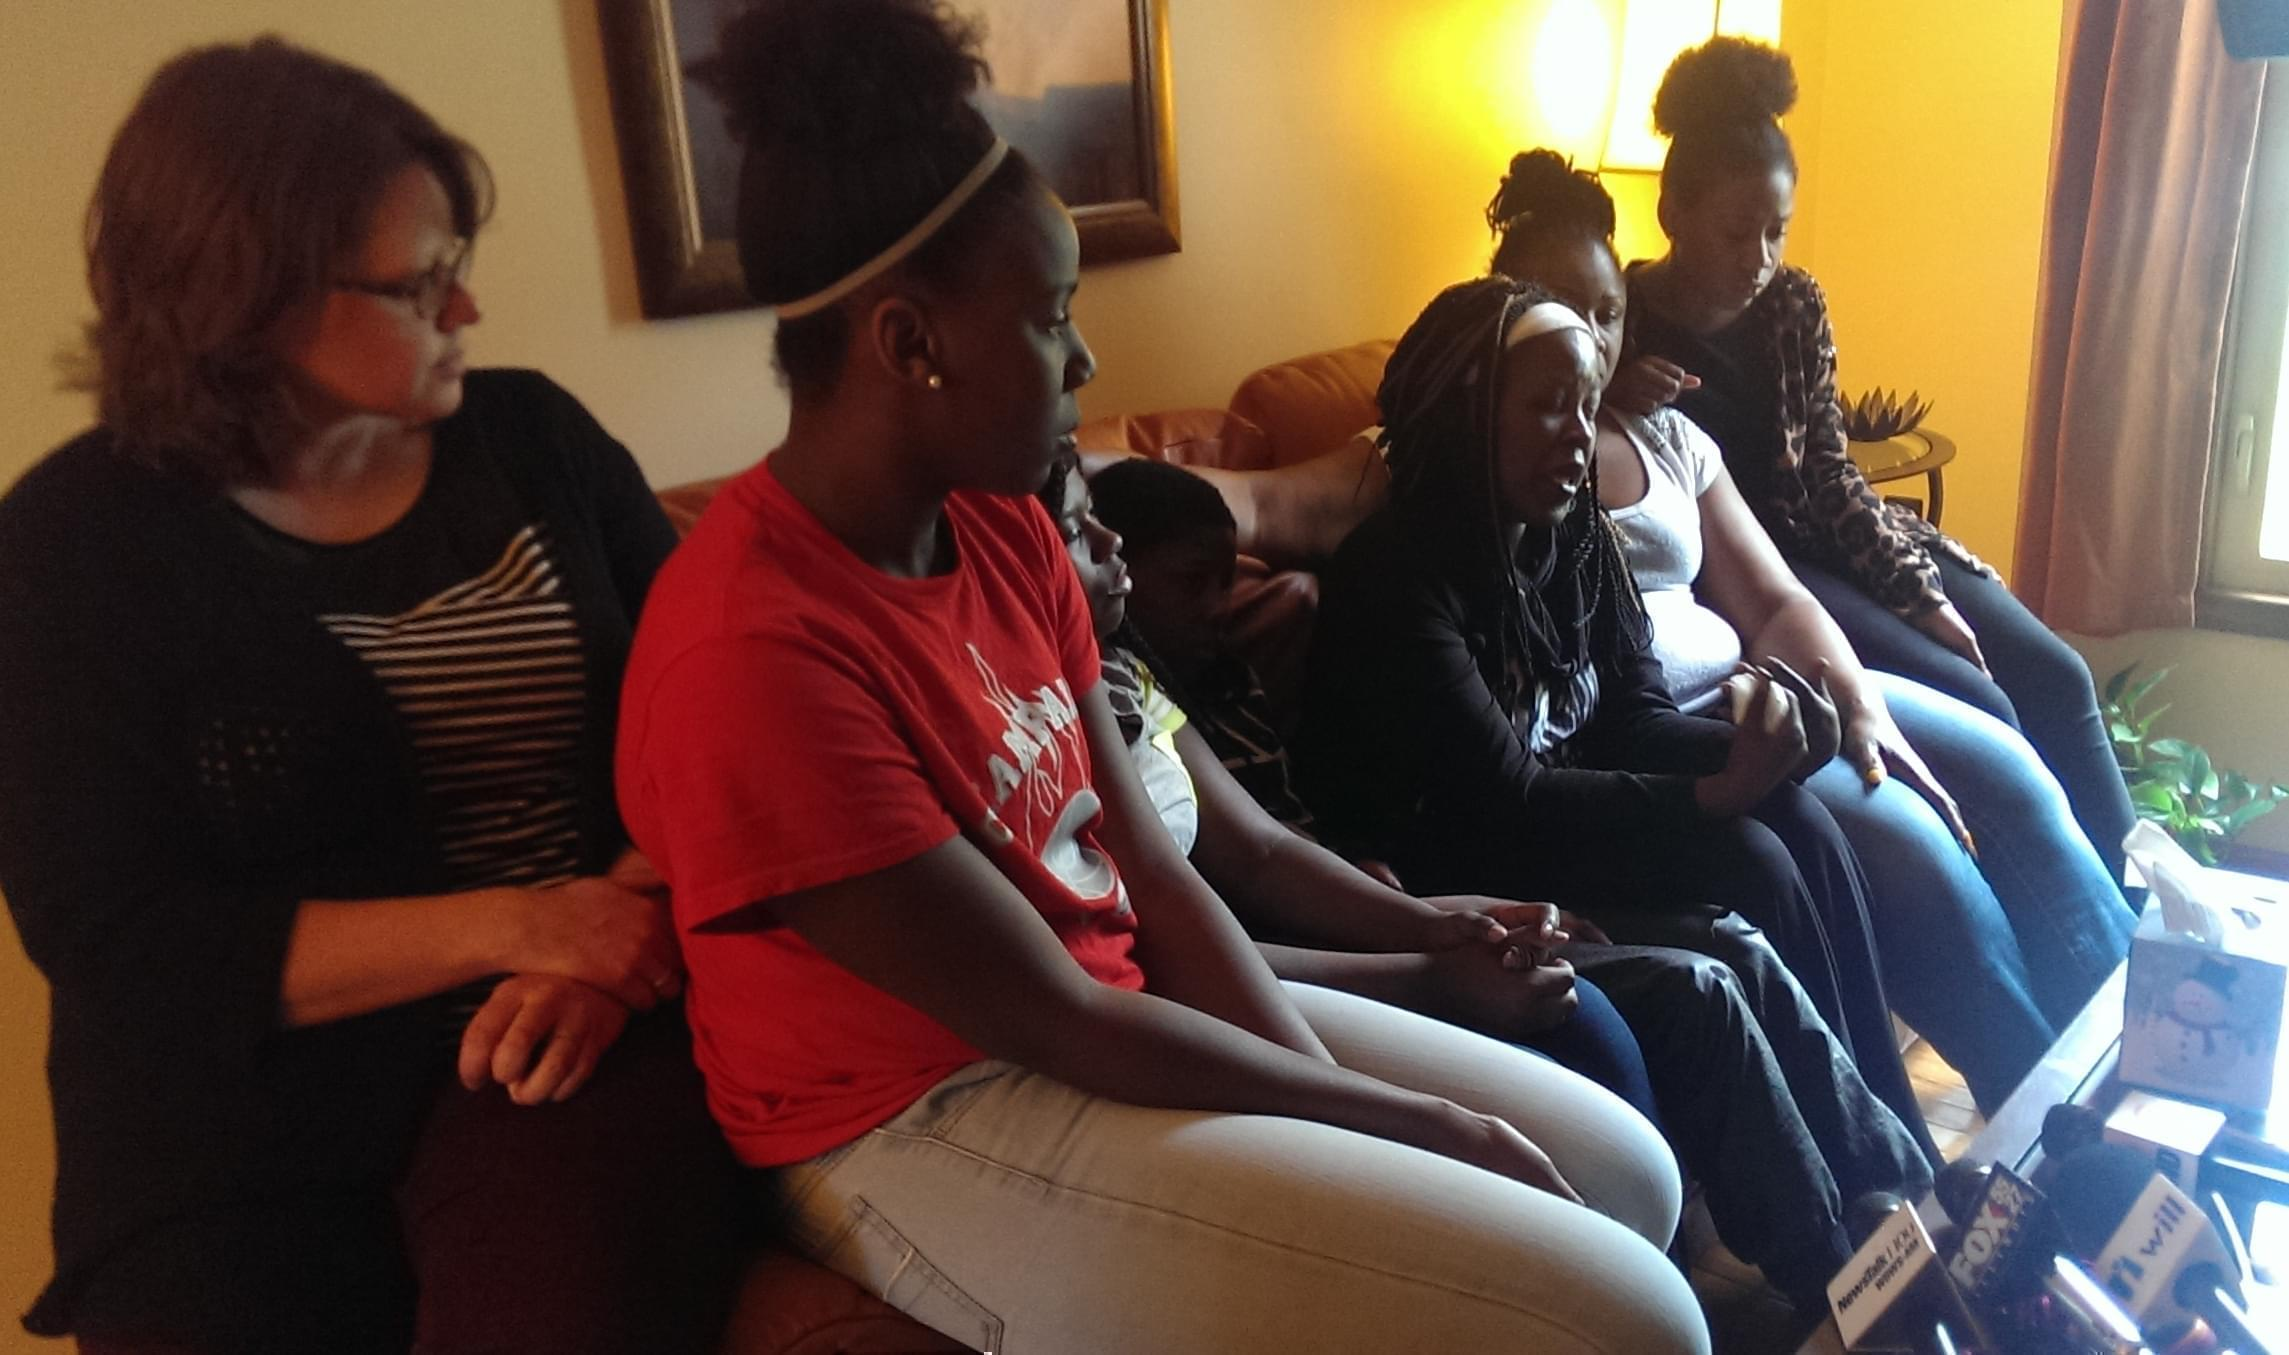 Family and friends of Ashley Gibson, who died last week, address the media in Champaign Wednesday.